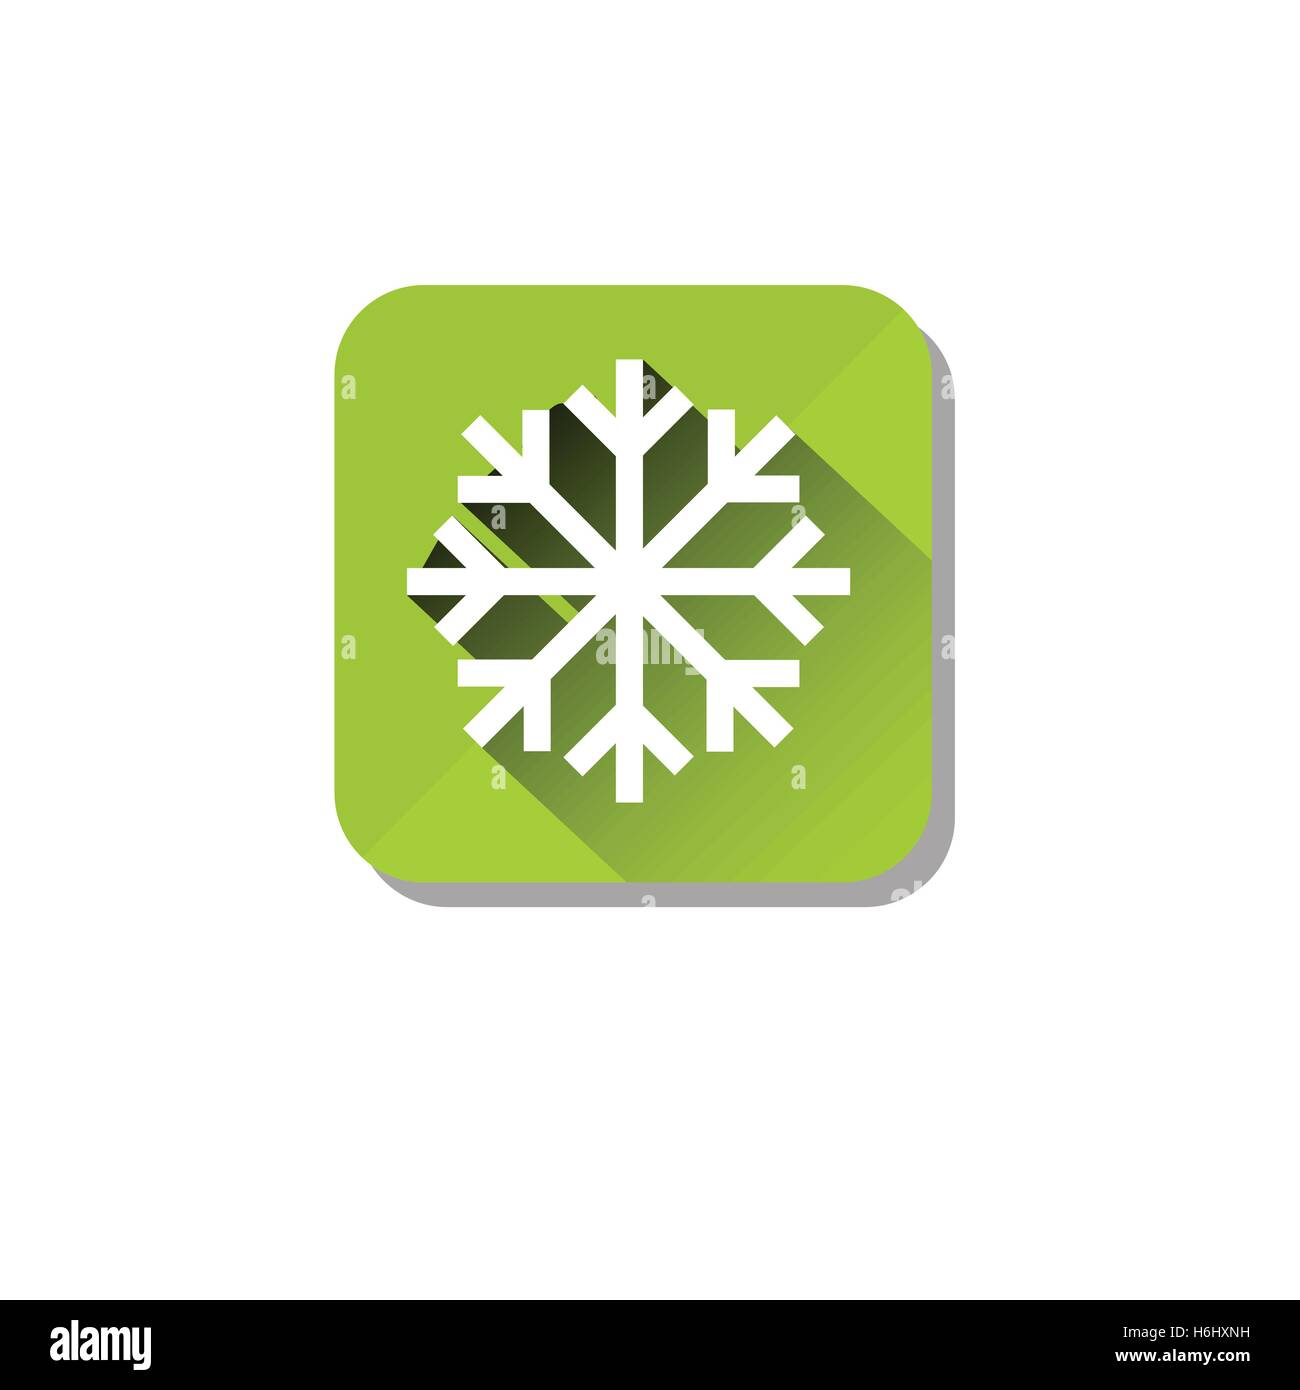 Ice Road Safety Sign Icon Flat Vector Illustration - Stock Image